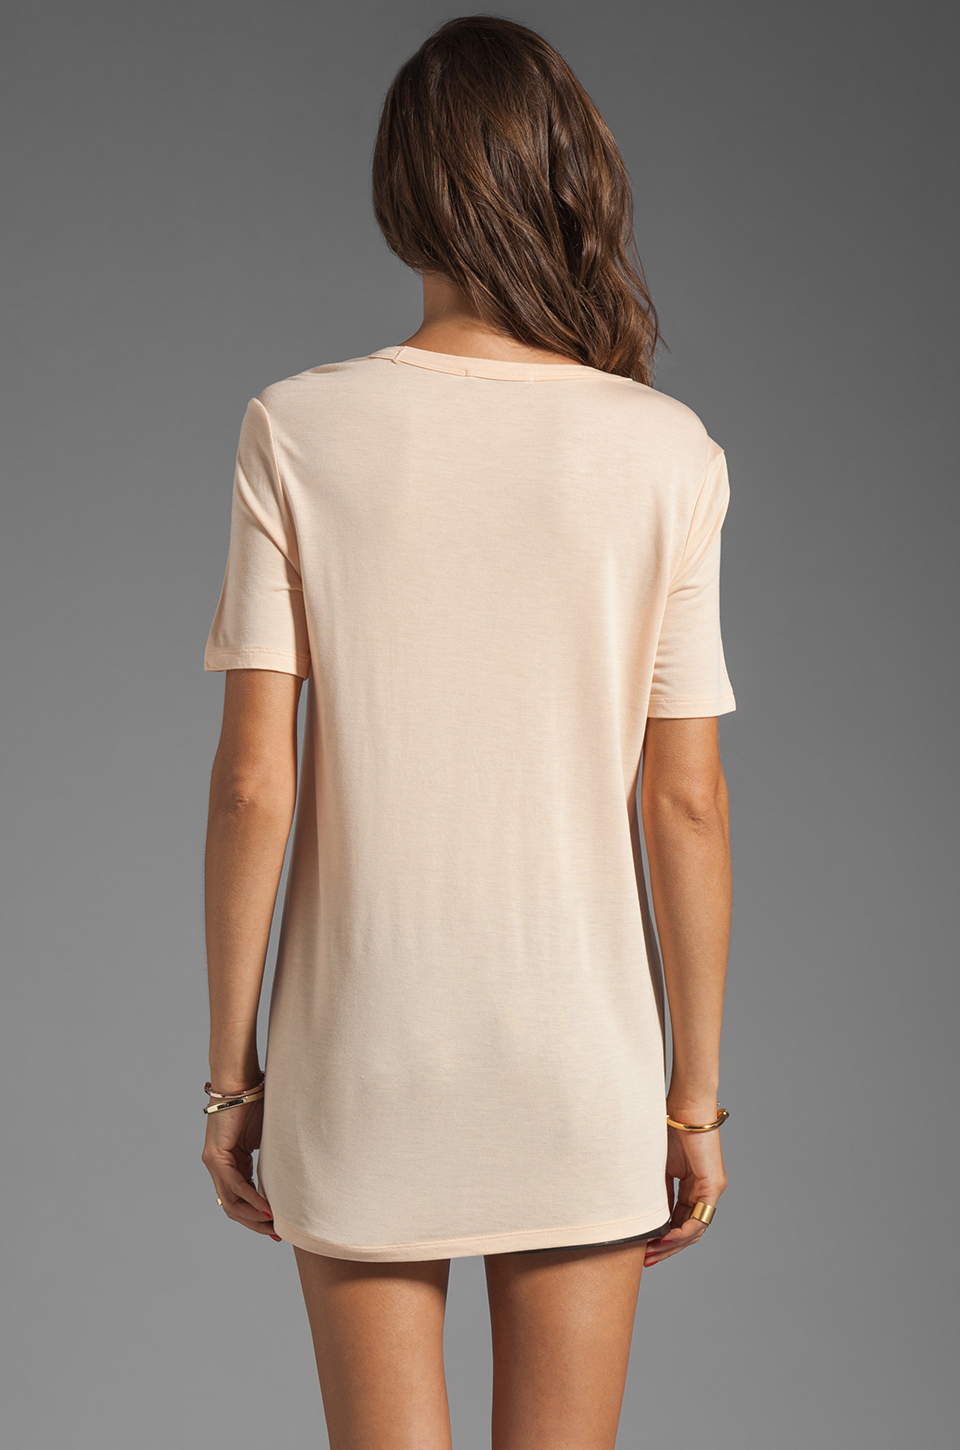 T by Alexander Wang Classic Tee with Pocket in Sorbet